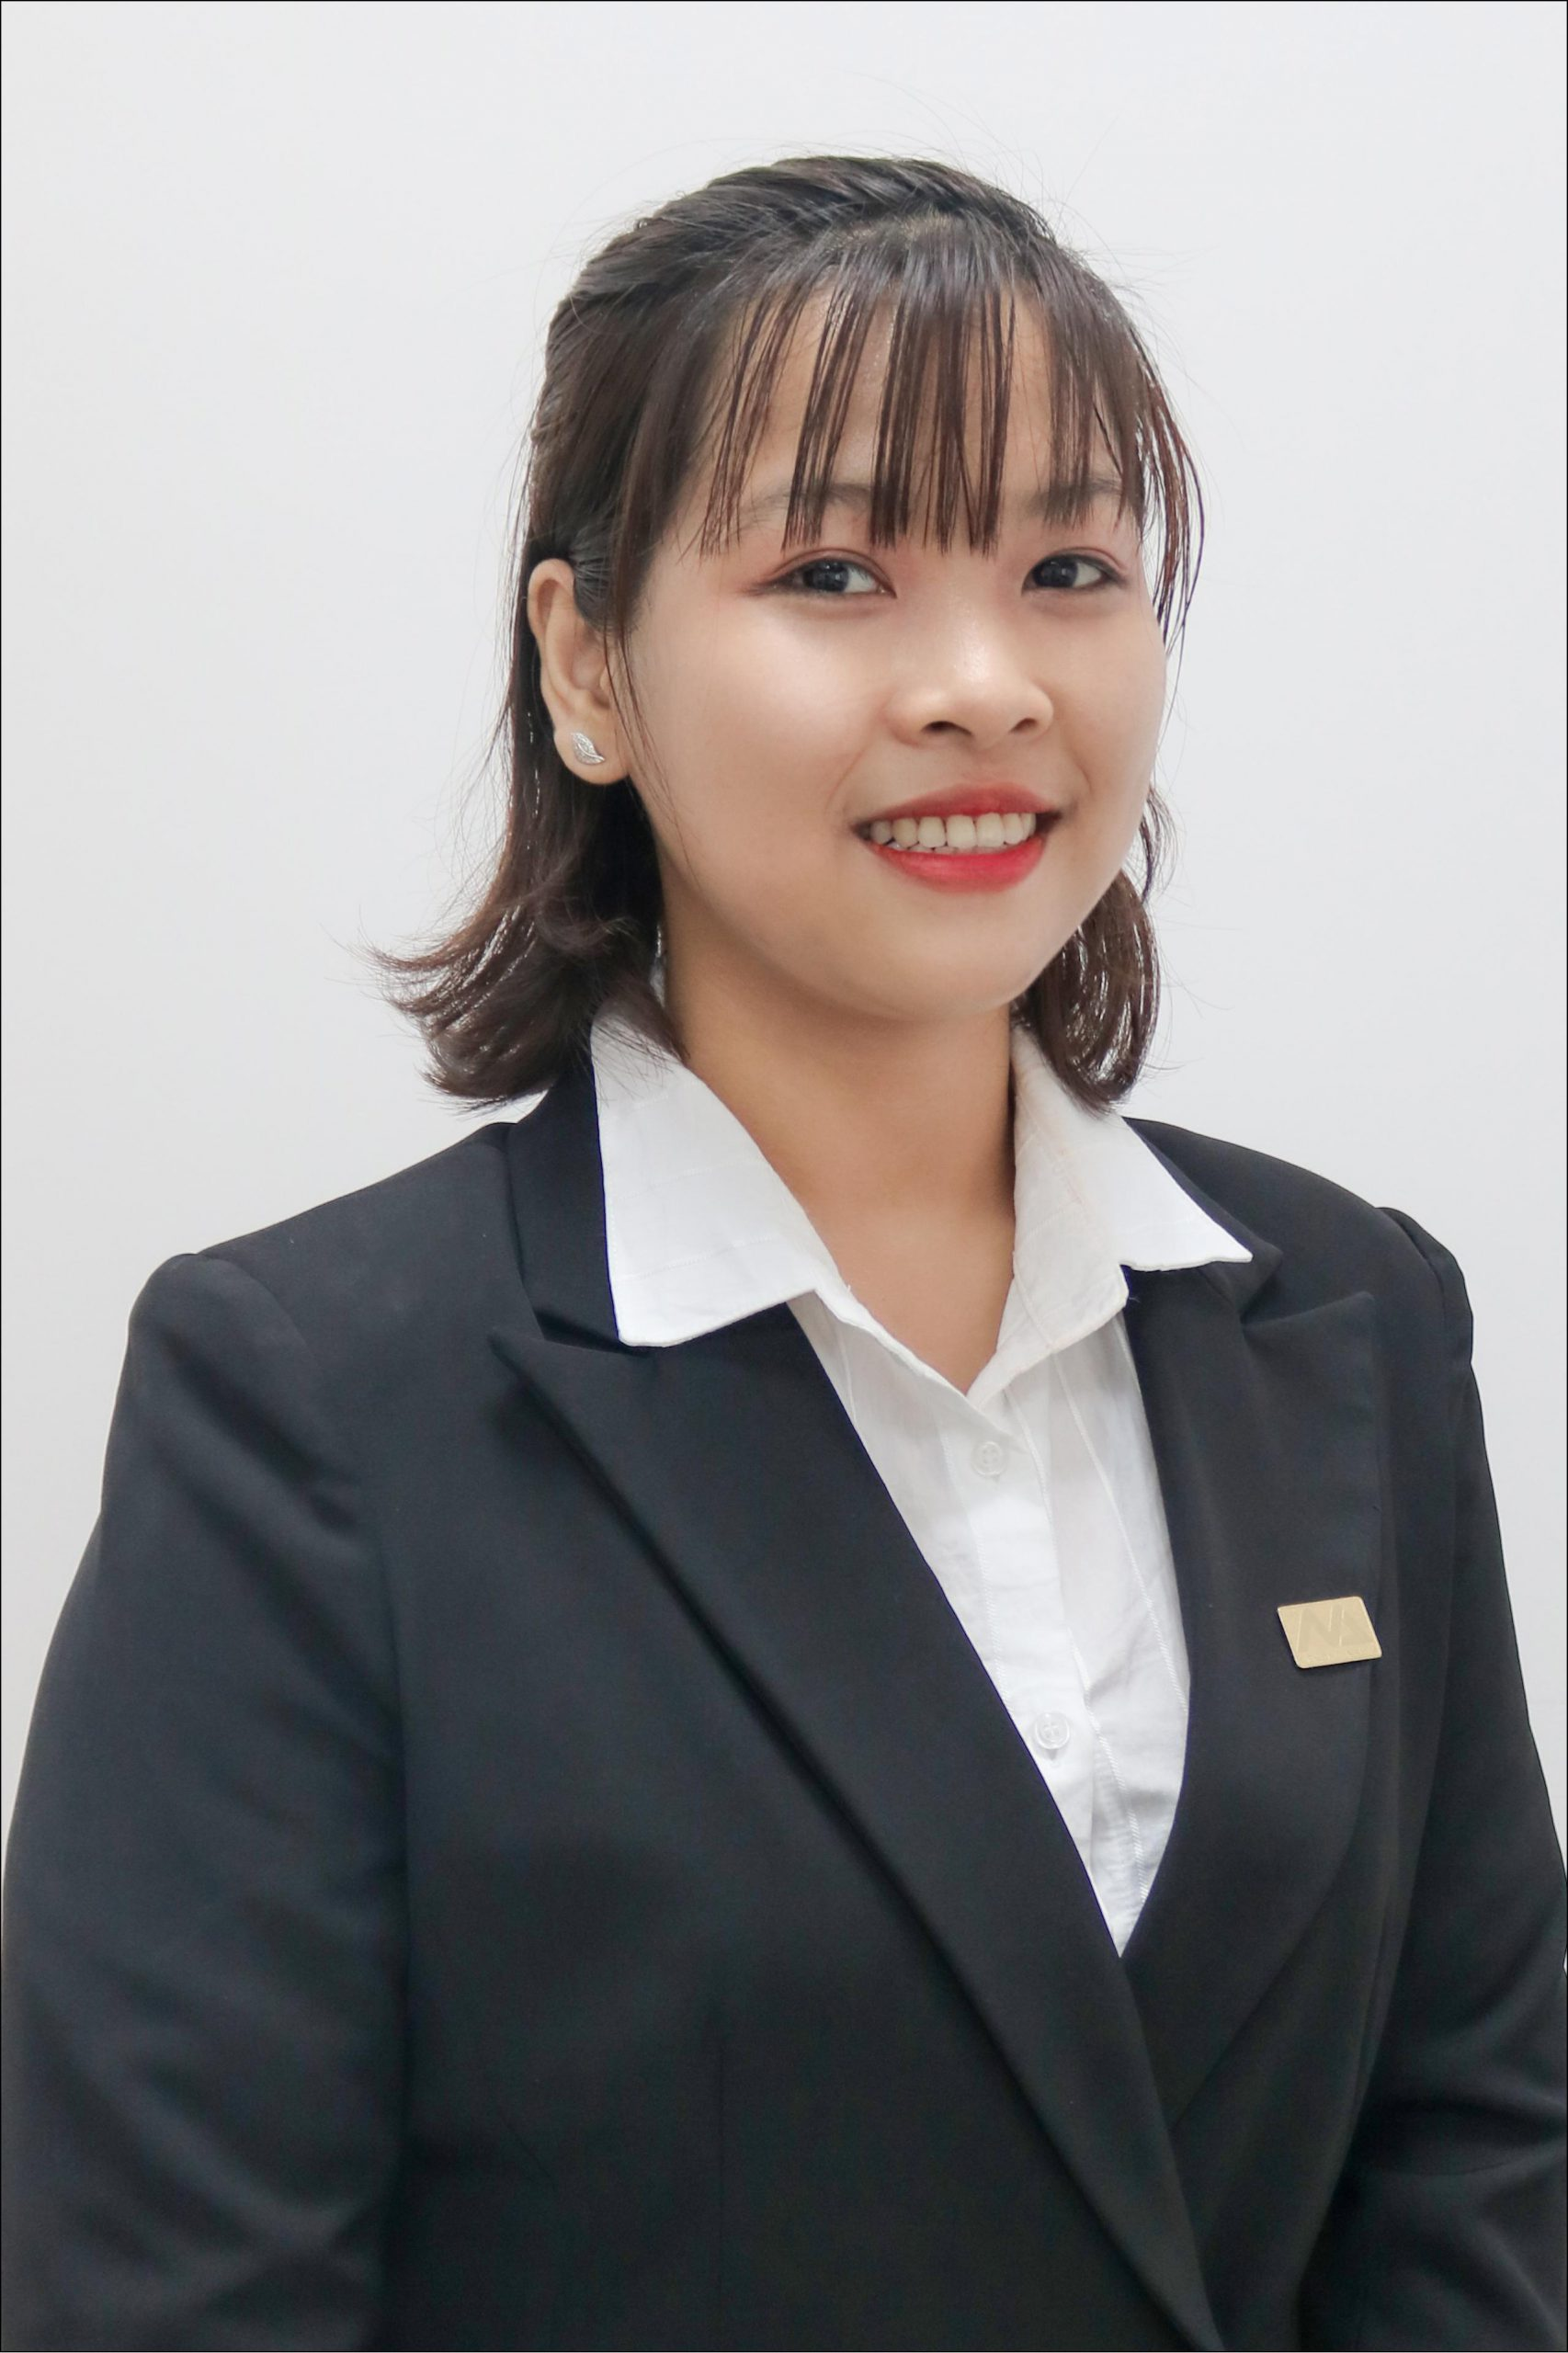 Thanh Anh